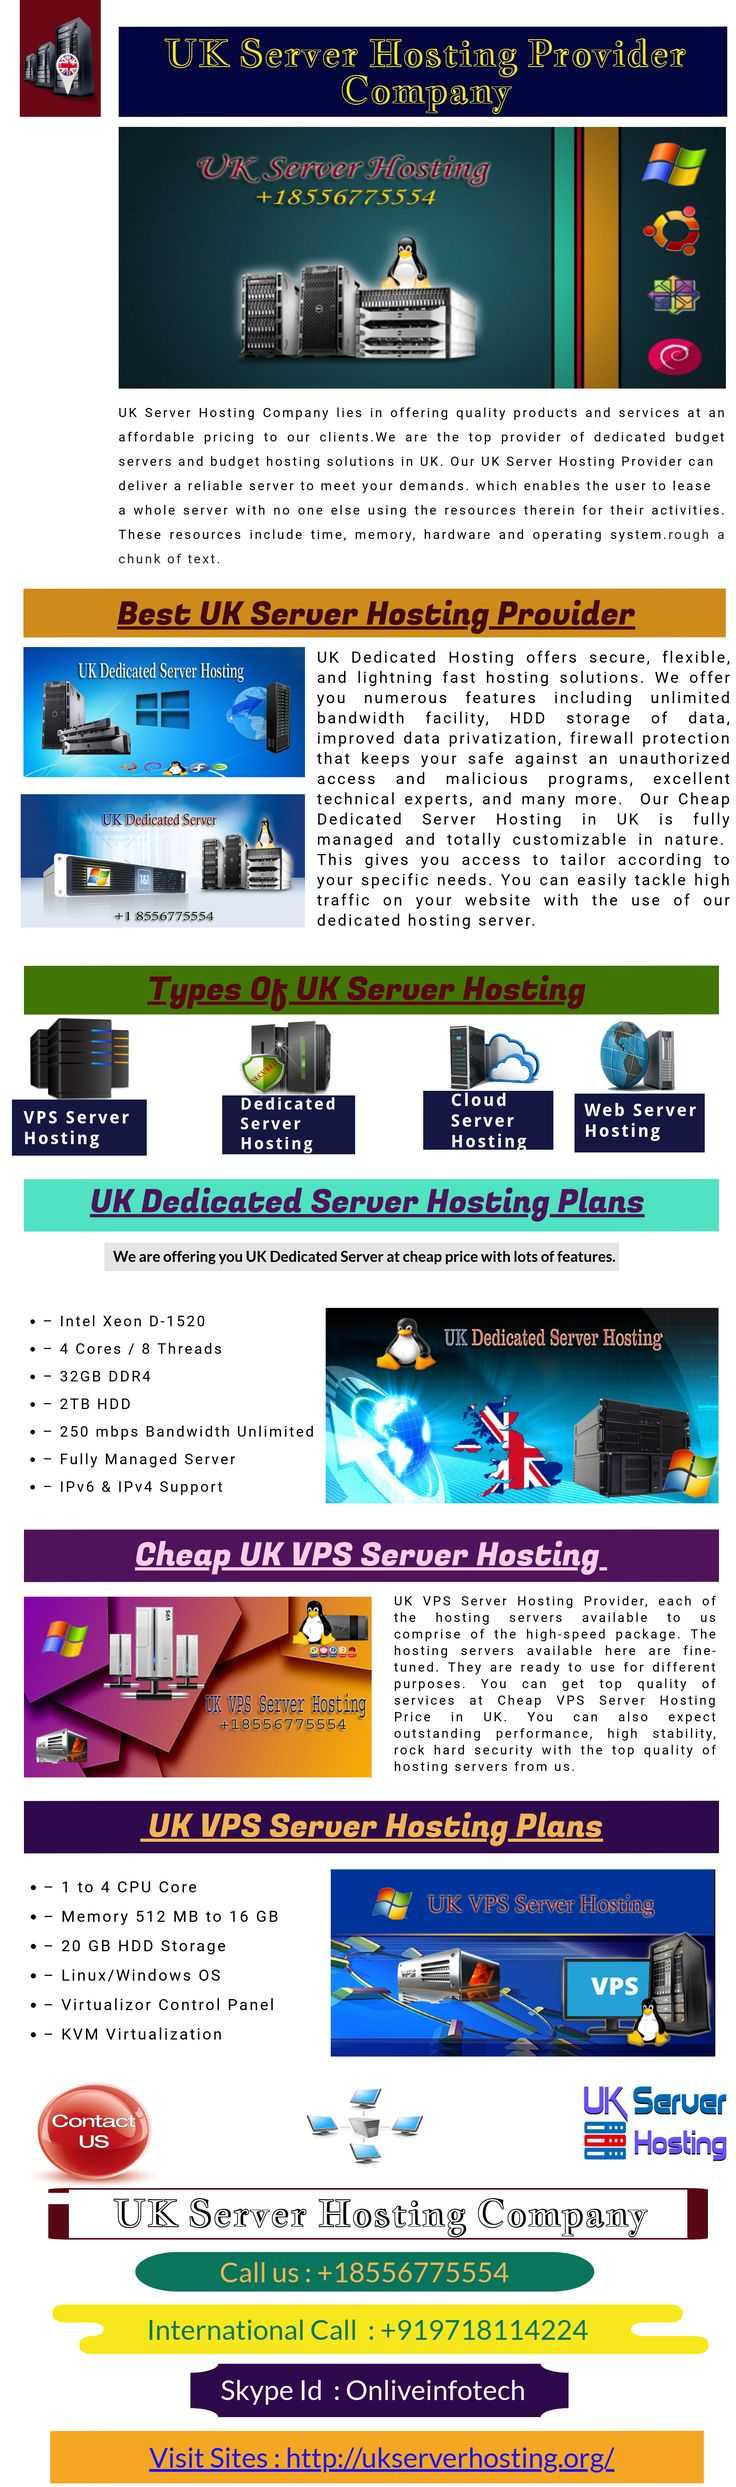 UK Server Hosting is providing a top-level Dedicated and VPS hosting service, with our powerful, reliable and easy-to-setup. Get powerful features with fully managed server management services. Take advantage of UK Dedicated Server and VPS hosting server facilities and high performance service. Our company provides cheapest server Hosting Services with free technical support services. Call us - +1 8556775554 Skype - ONLIVEINFOTECH Visit - http://ukserverhosting.org/